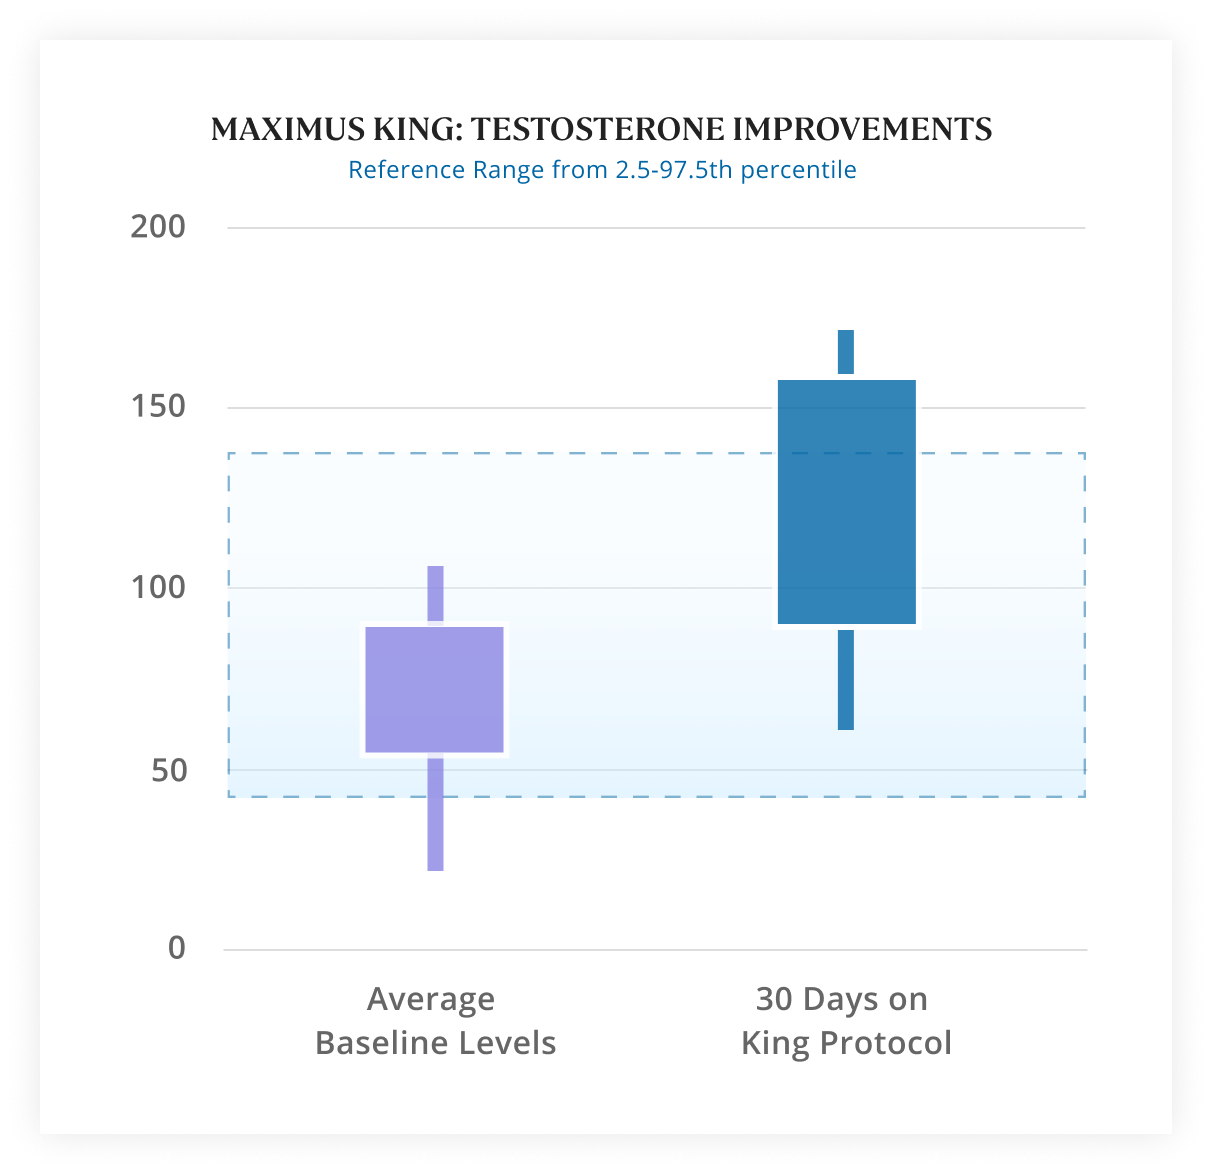 2X Higher Testosterone Means  Better Mood, Vitality, & Health